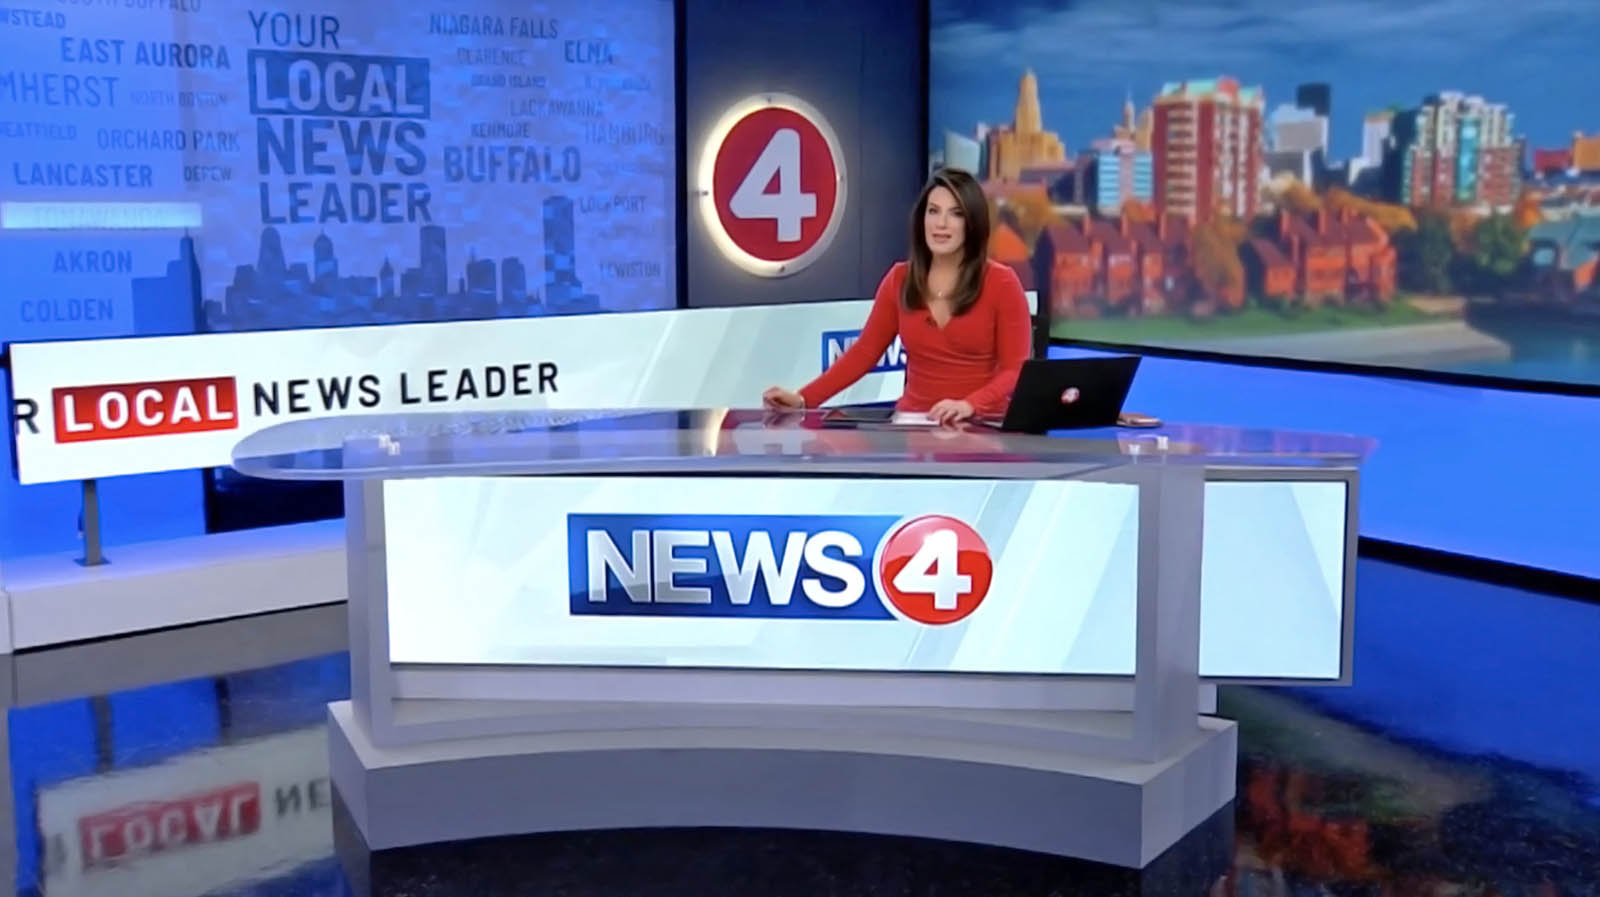 WIVB News anchor ready for news briefing